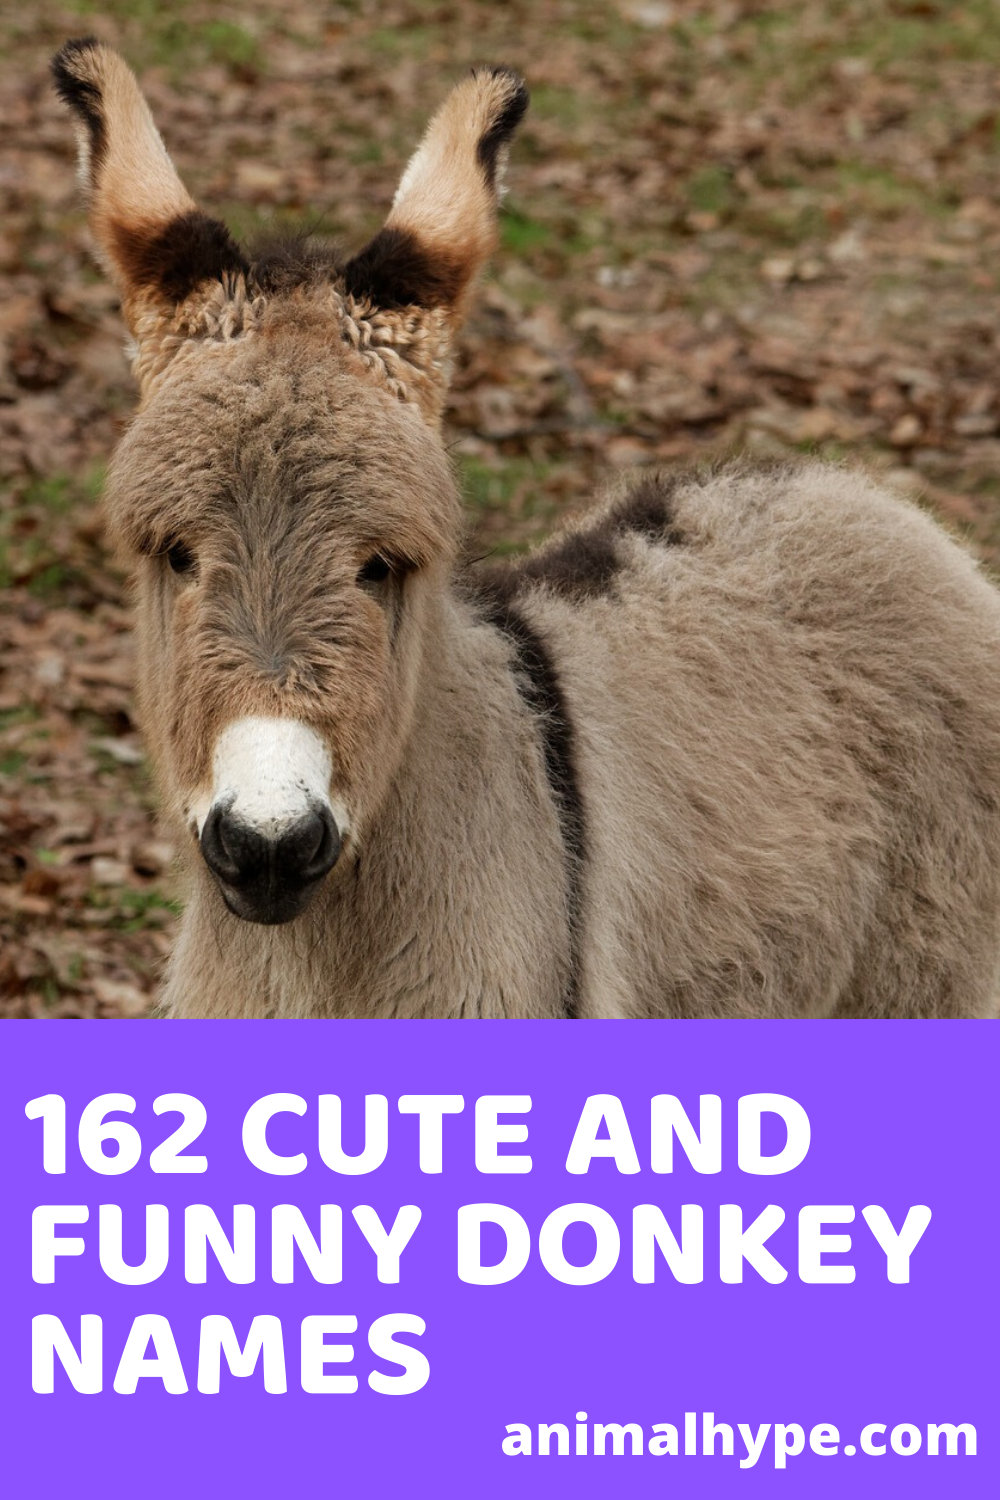 162 Cute and Funny Donkey Names in 2020 Funny, Donkey, Names